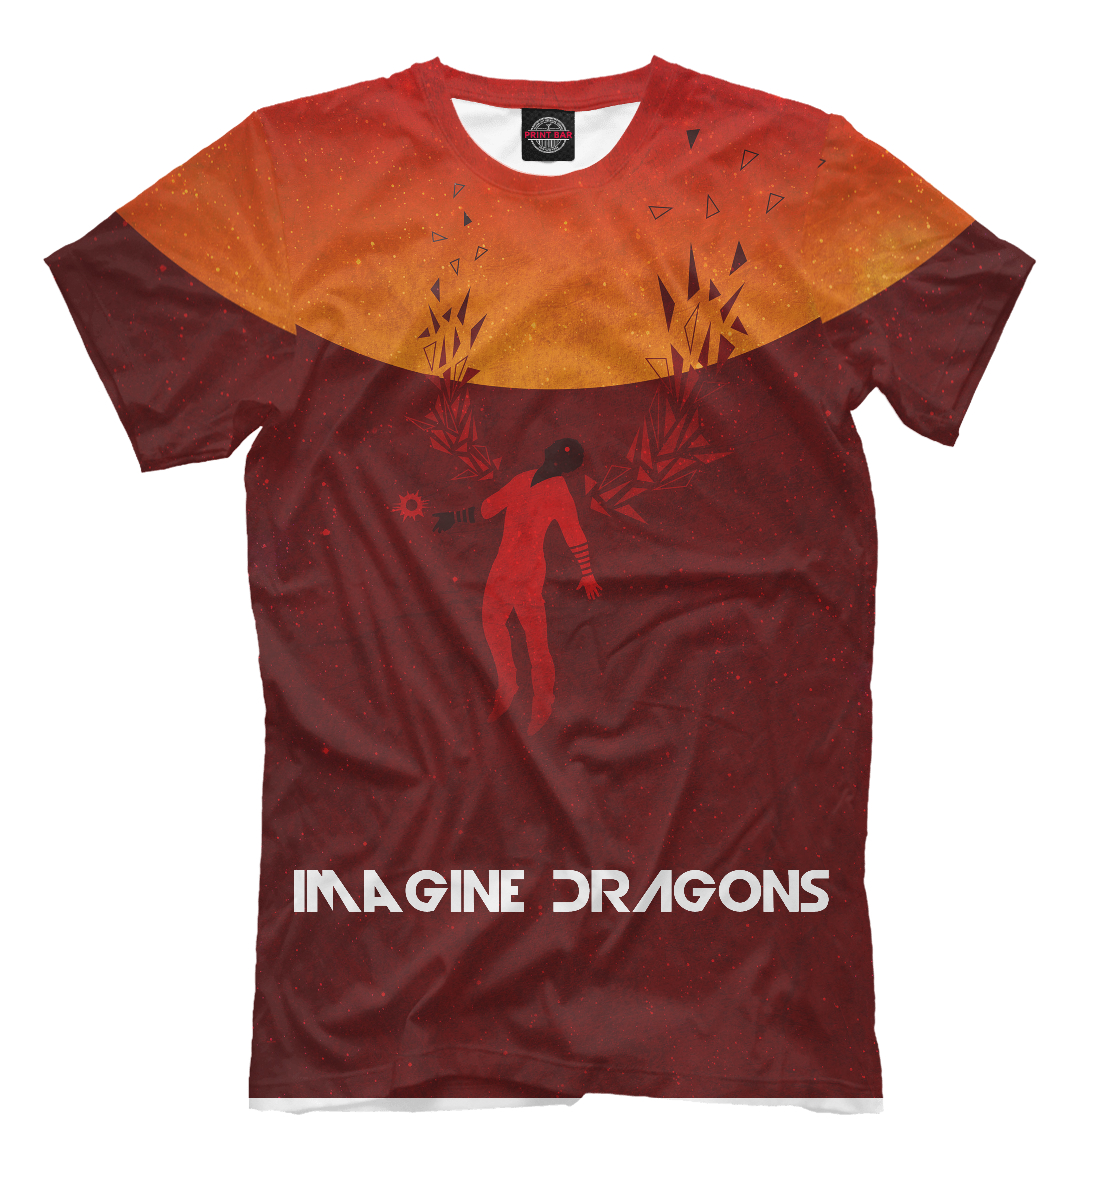 Купить Imagine Dragons, Printbar, Футболки, IMA-244101-fut-2